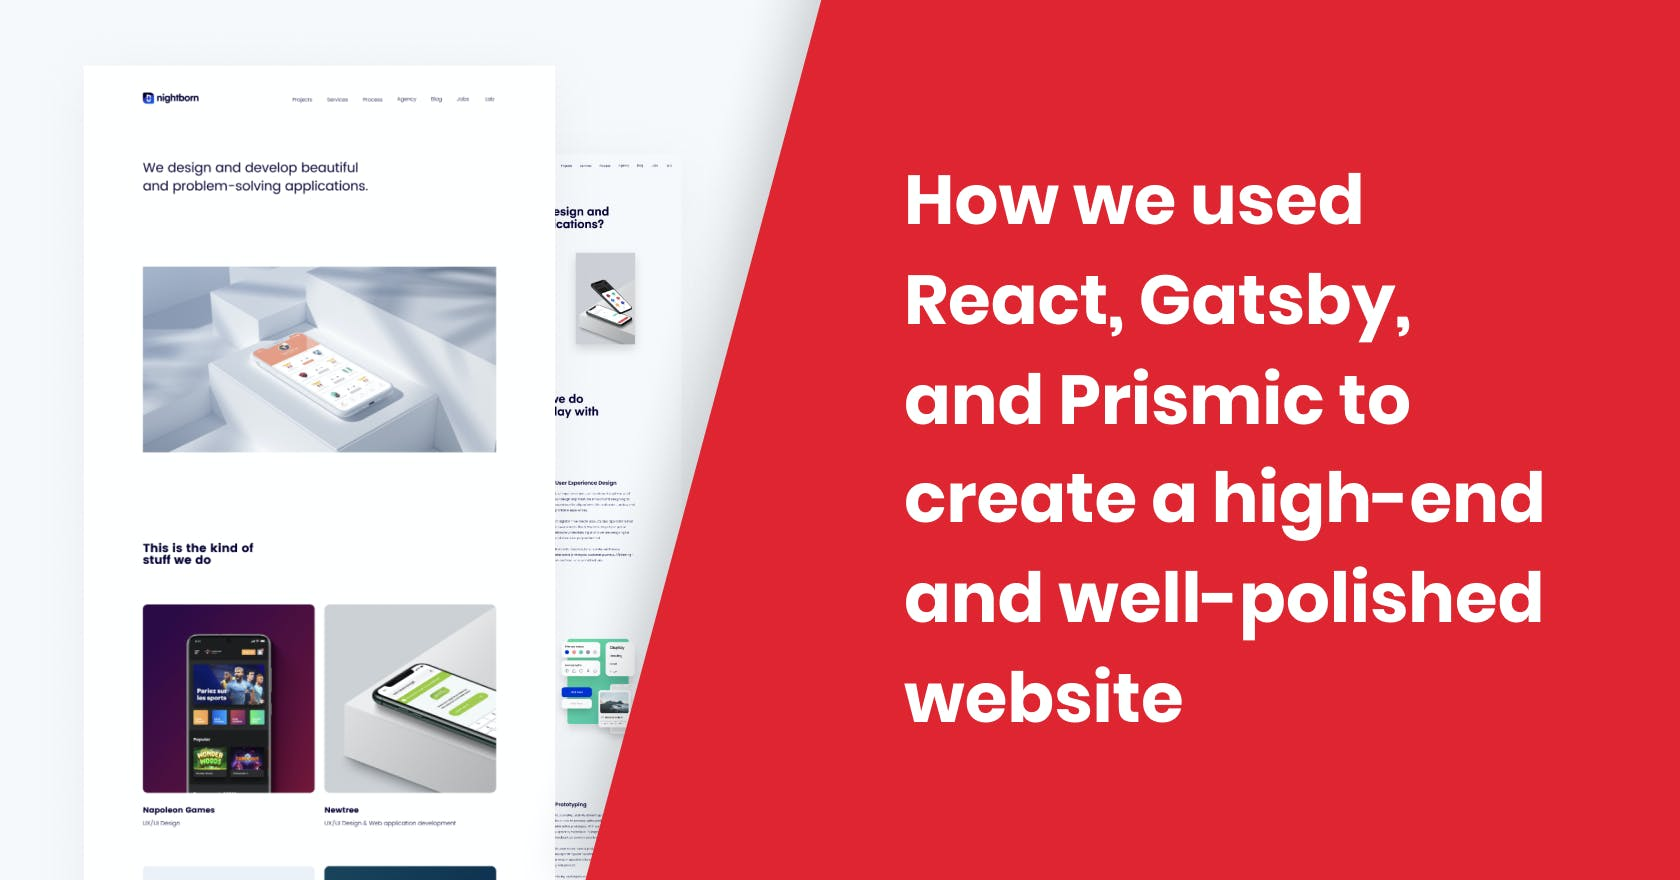 Nightborn - How we used React, Gatsby, and Prismic to create a high-end and well-polished website